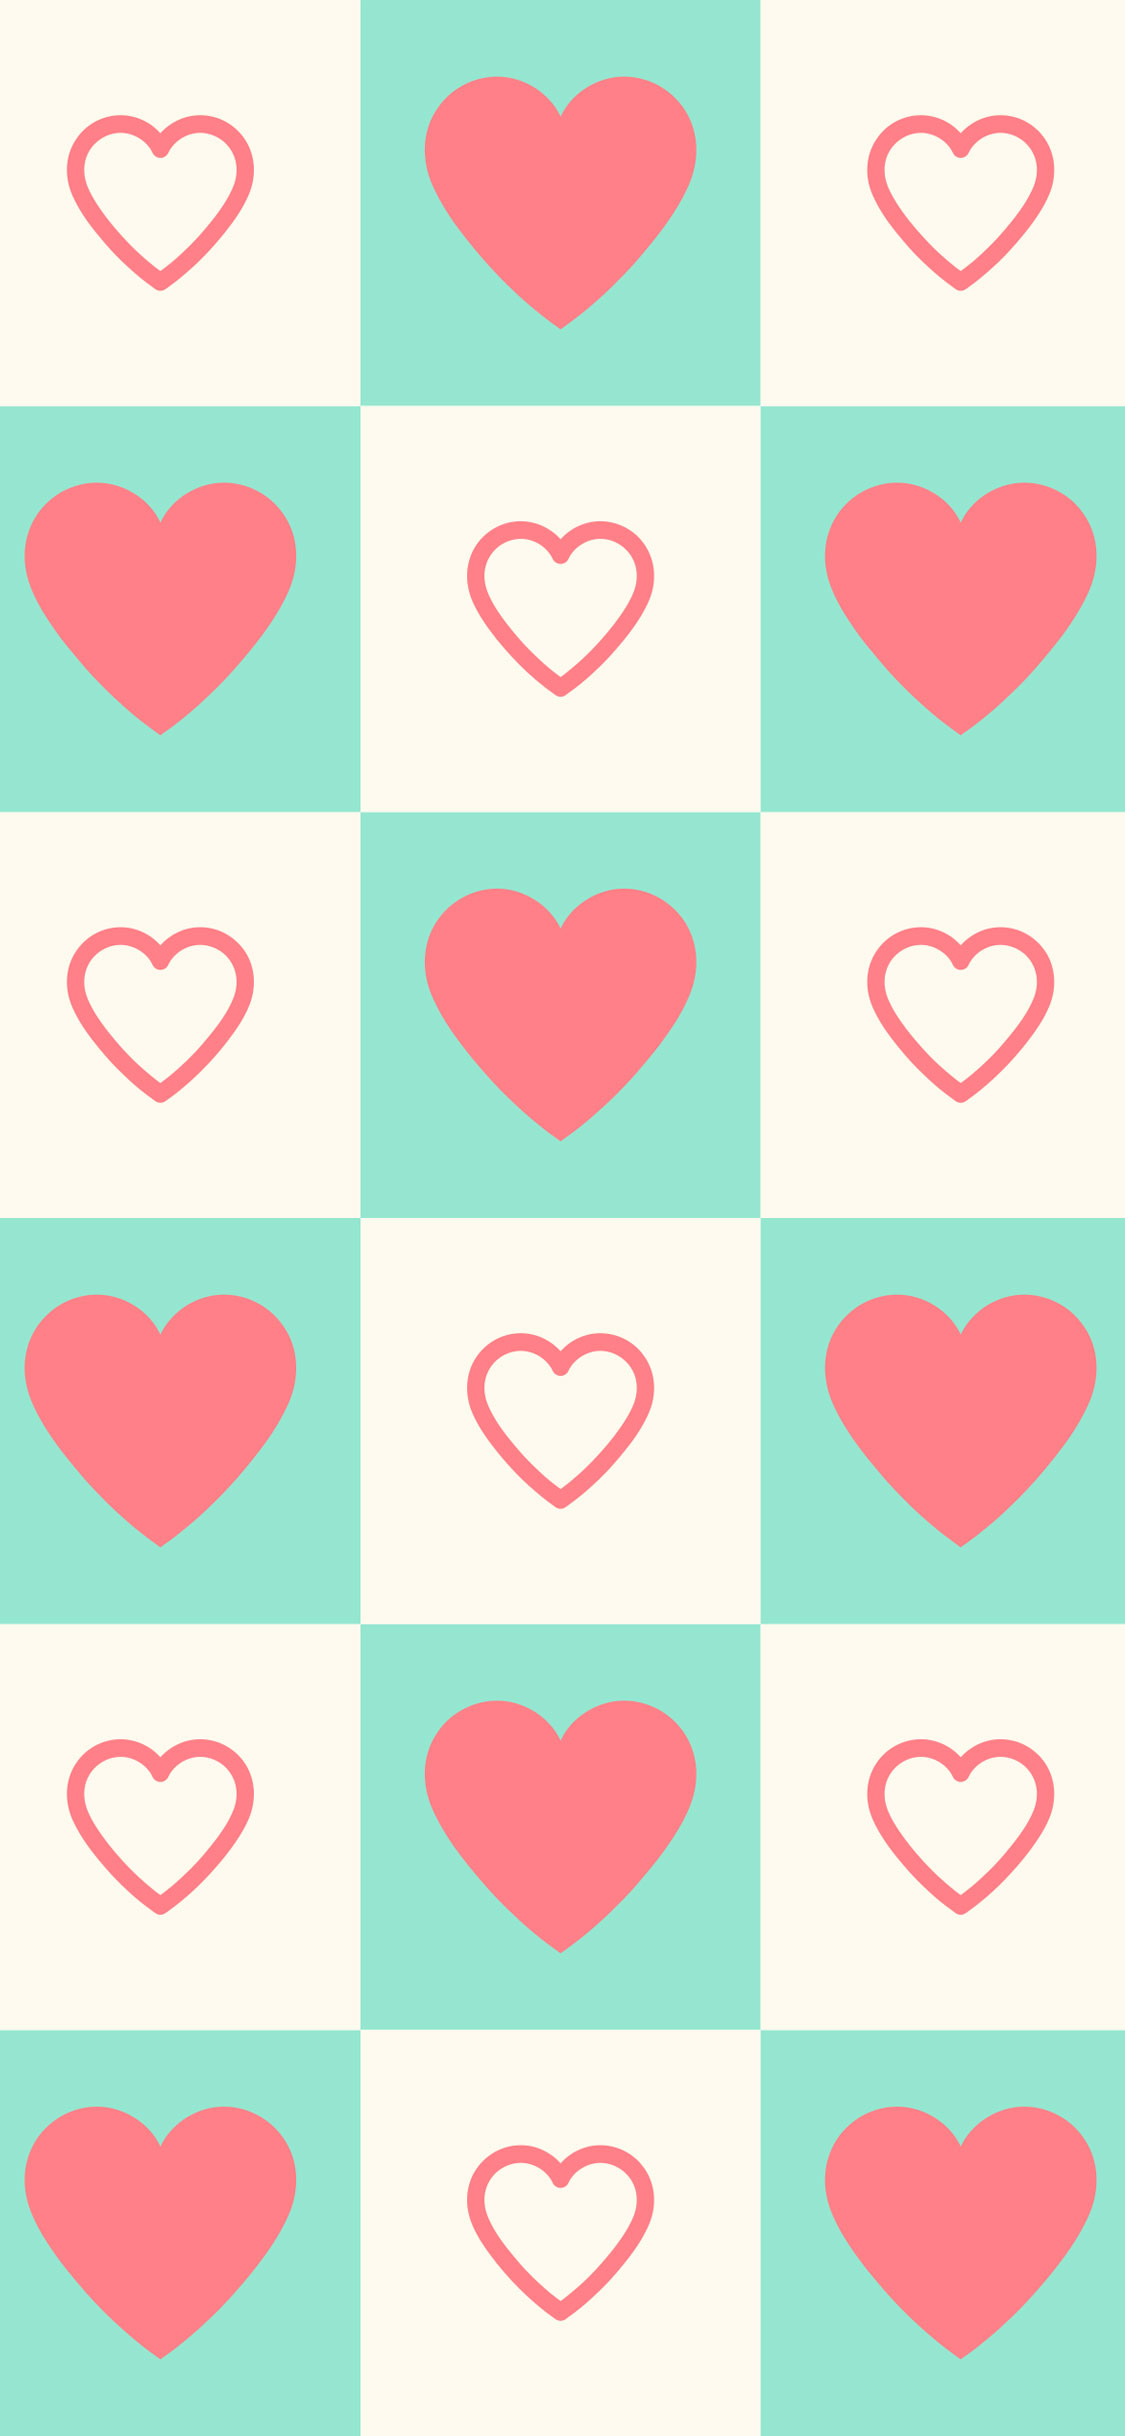 Cute-Heart-iPhone background